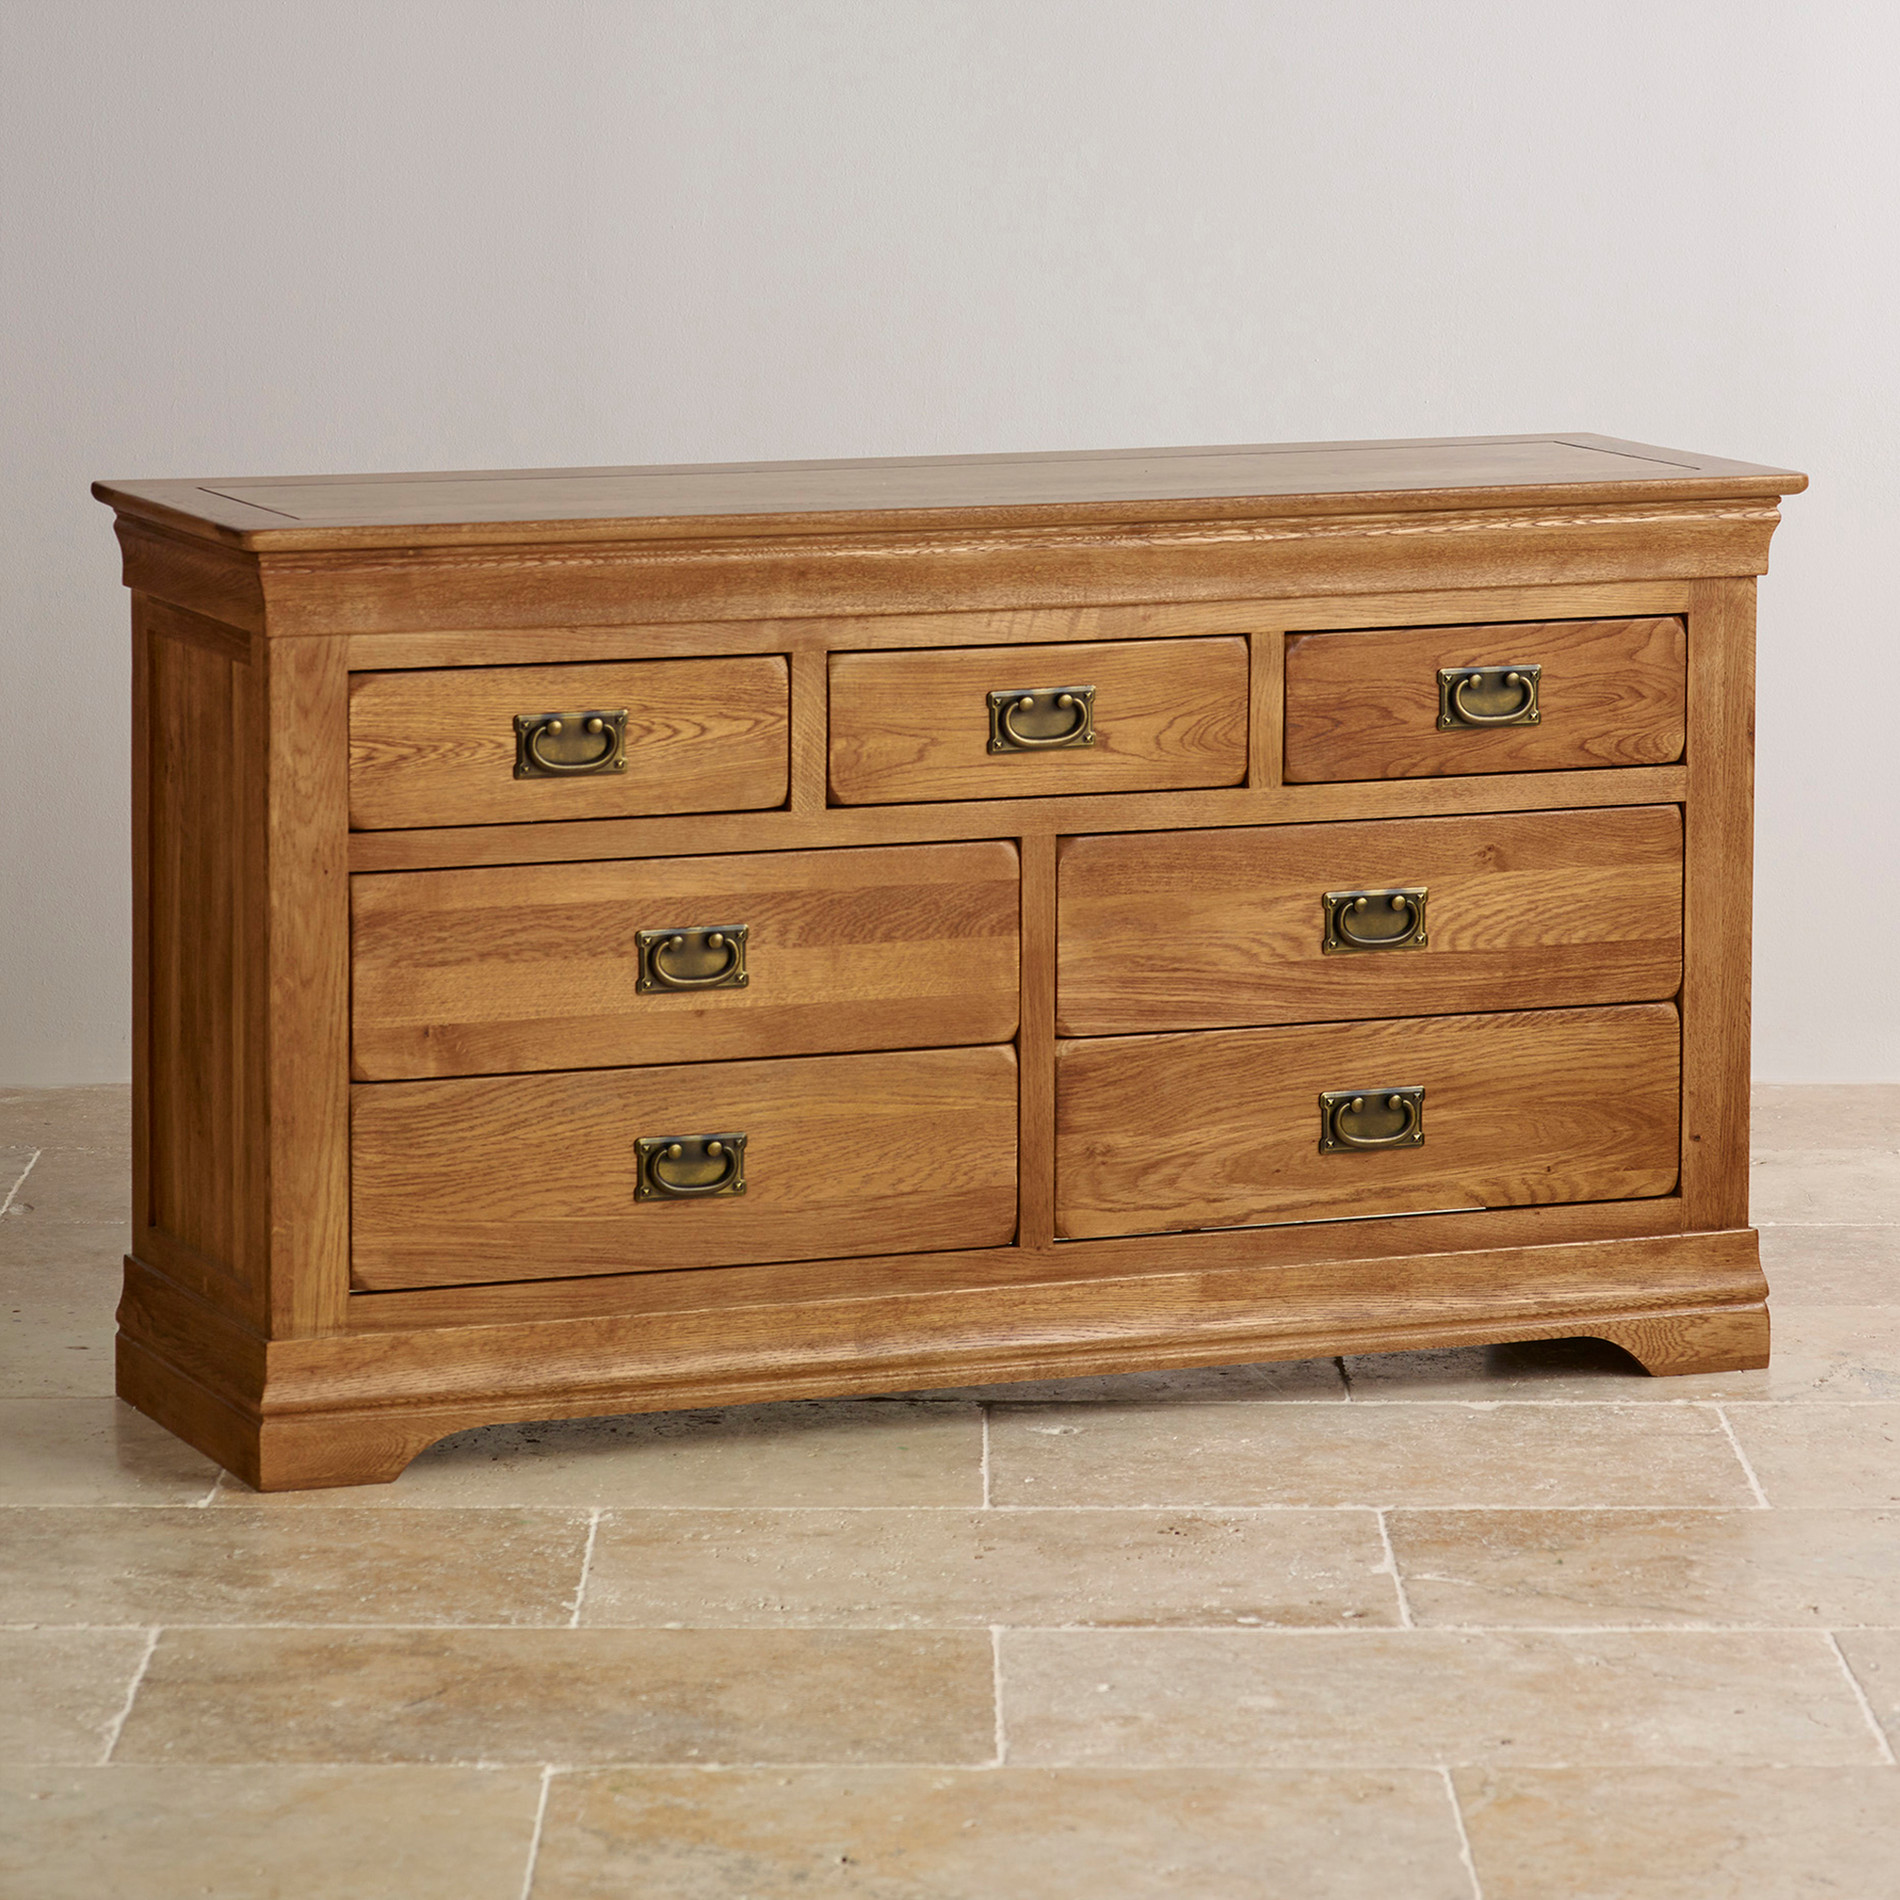 Dining Room Chest Of Drawers: French Farmhouse 3+4 Chest Of Drawers